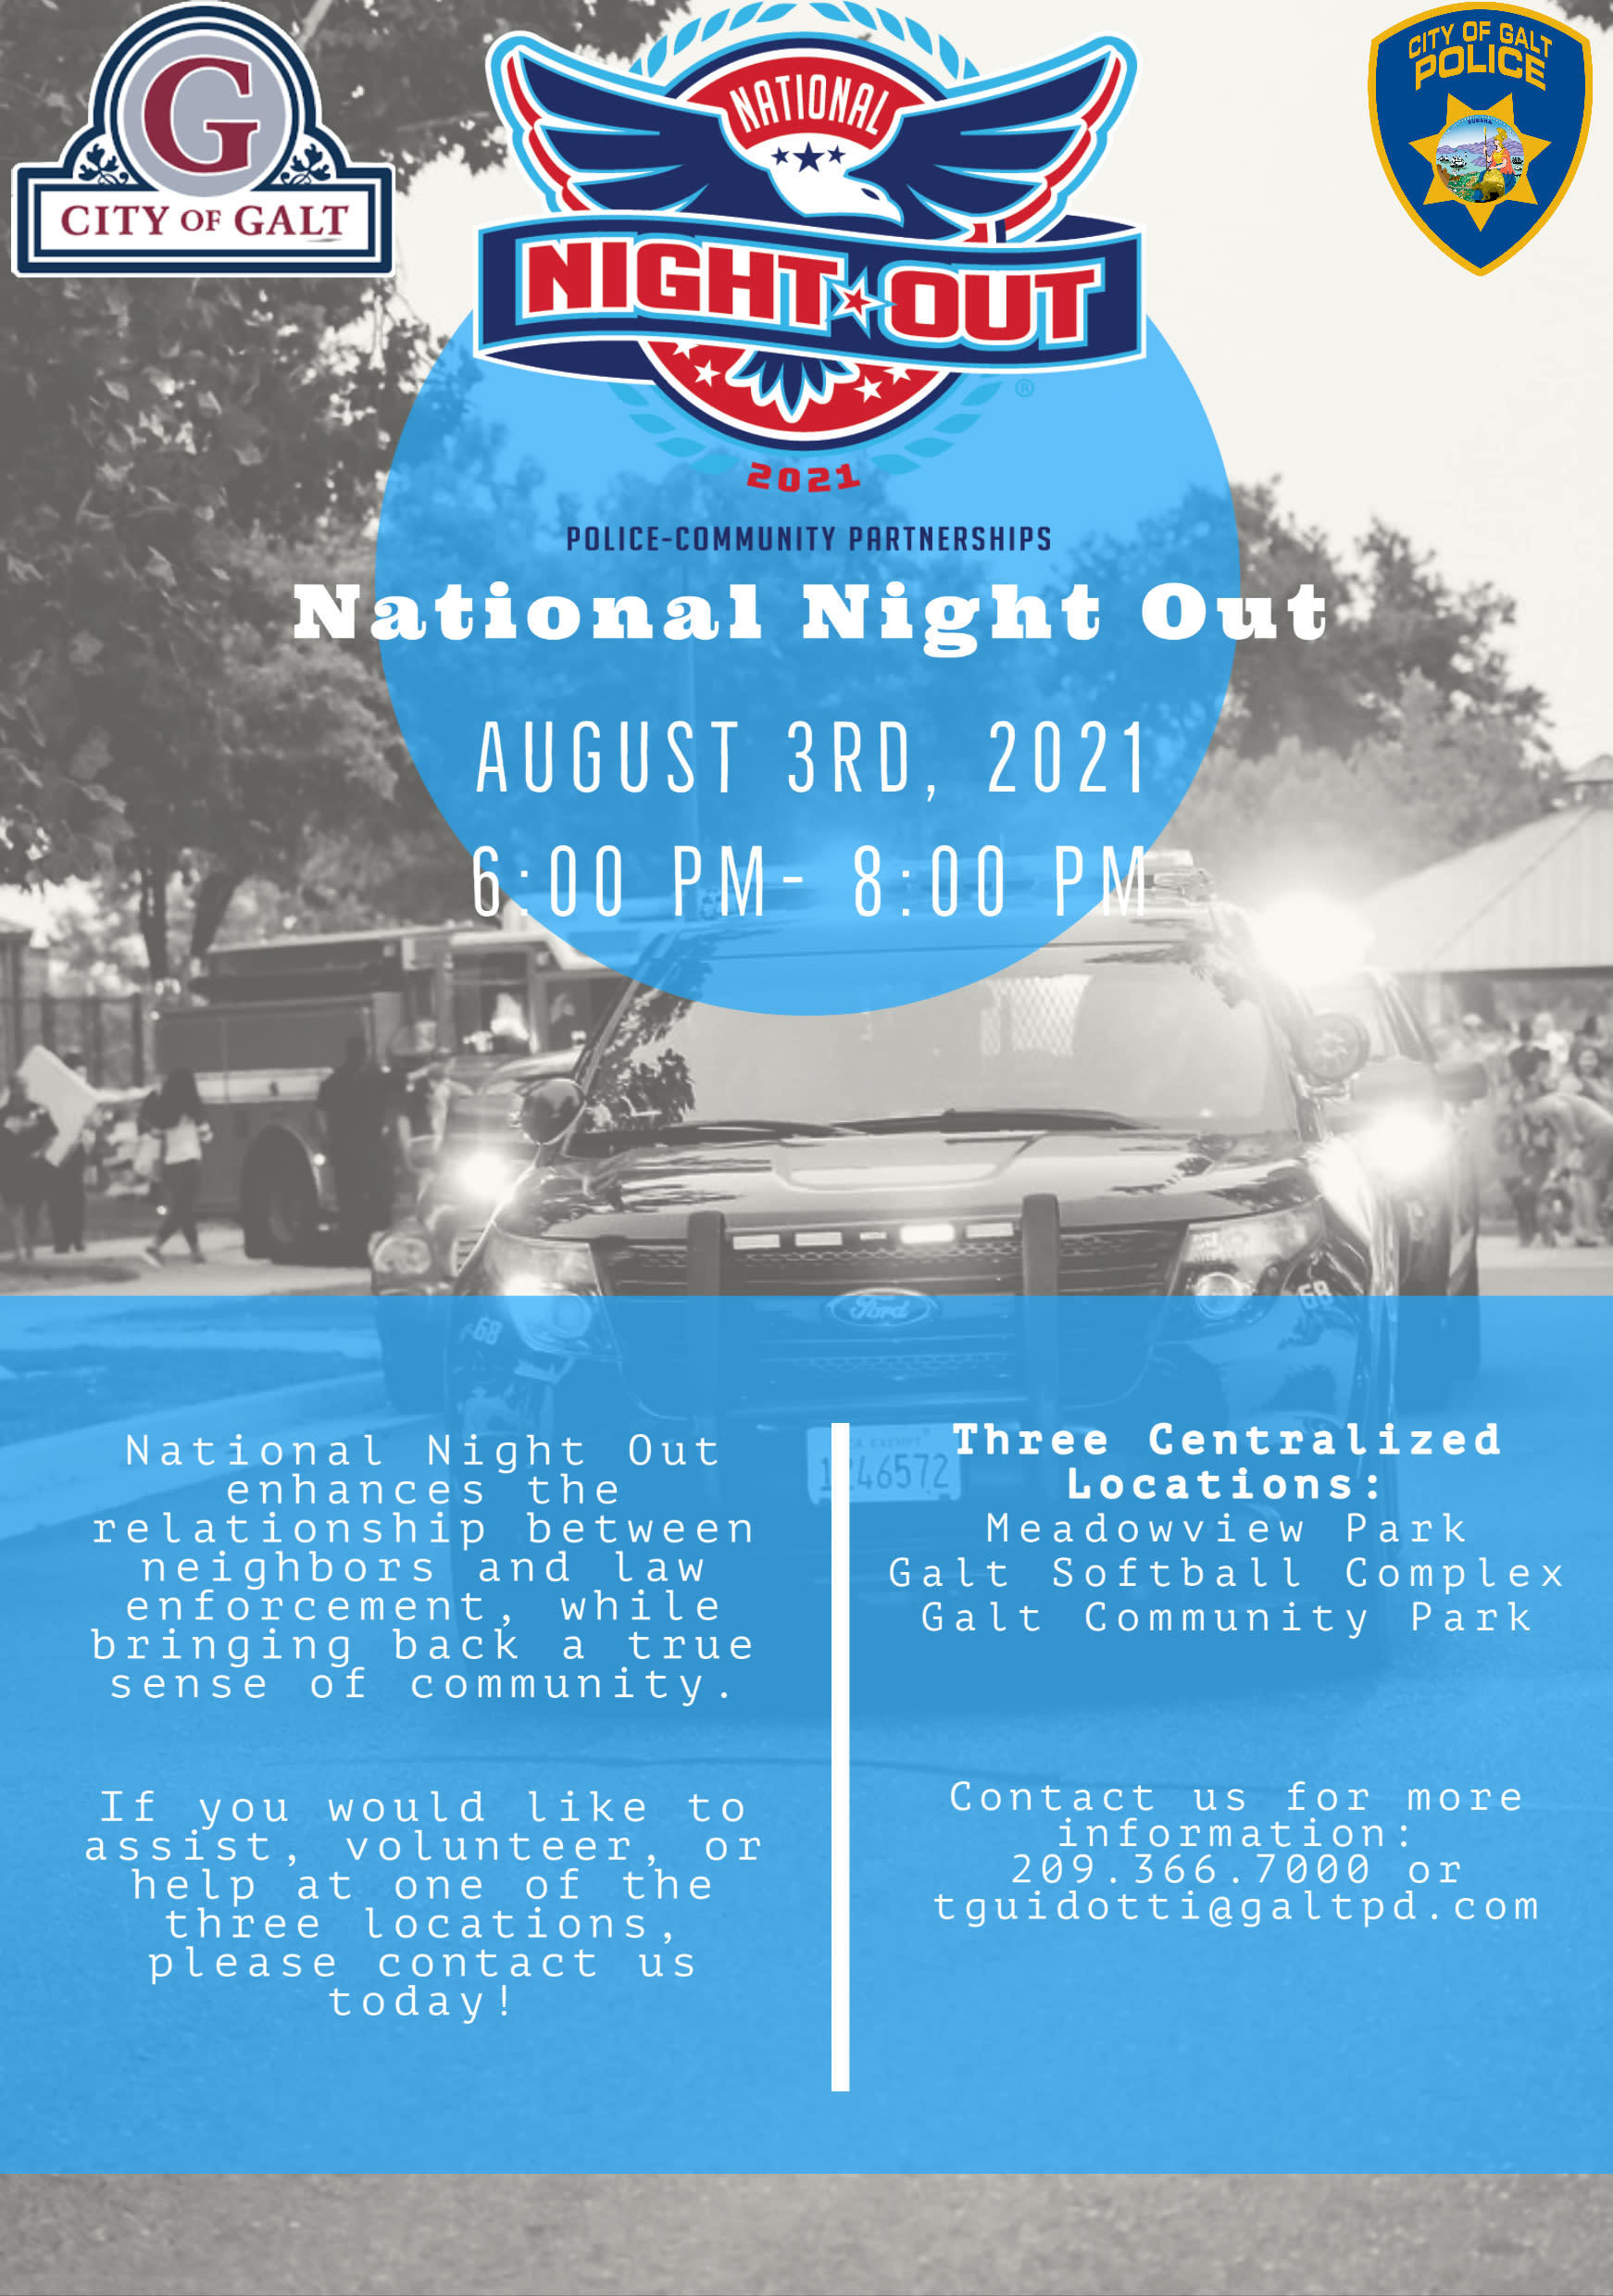 National Night Out flyer - August 3, 2021 from 6:00 pm to 8:00 pm